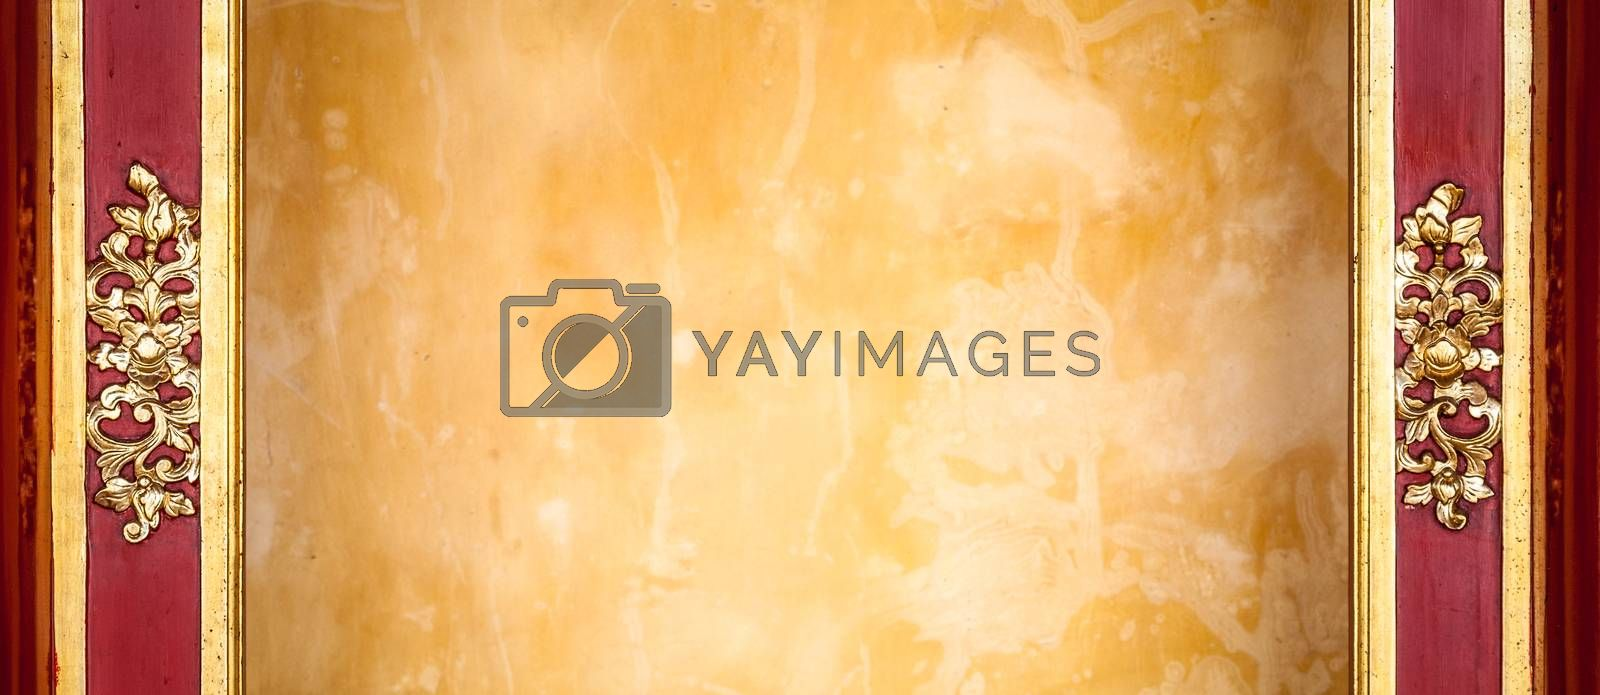 Wall with yellow stucco framed with decoration. Grungy wall with golden floral pattern on dark brown wooden boards both sides. Abstract background. Building exterior or interior.